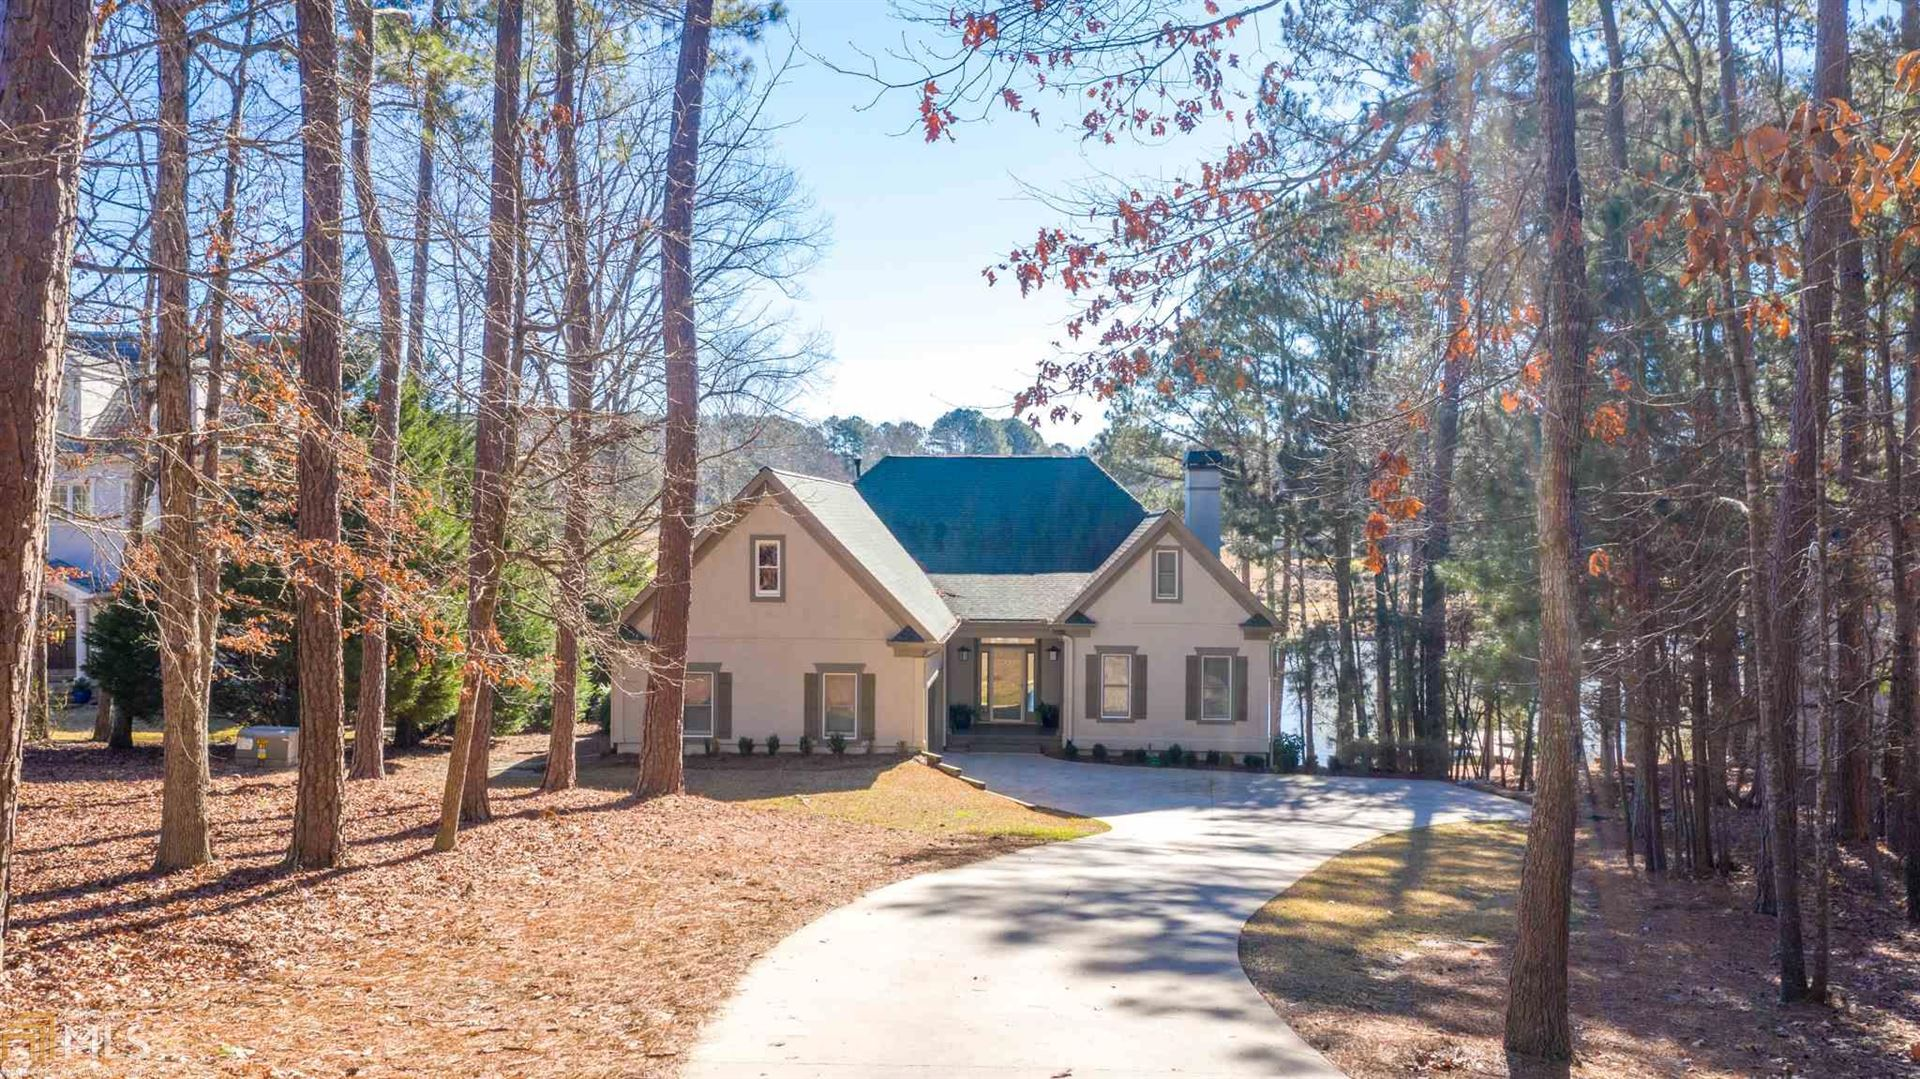 1140 Club Cove Dr, Greensboro, GA 30642 - MLS#: 8930628